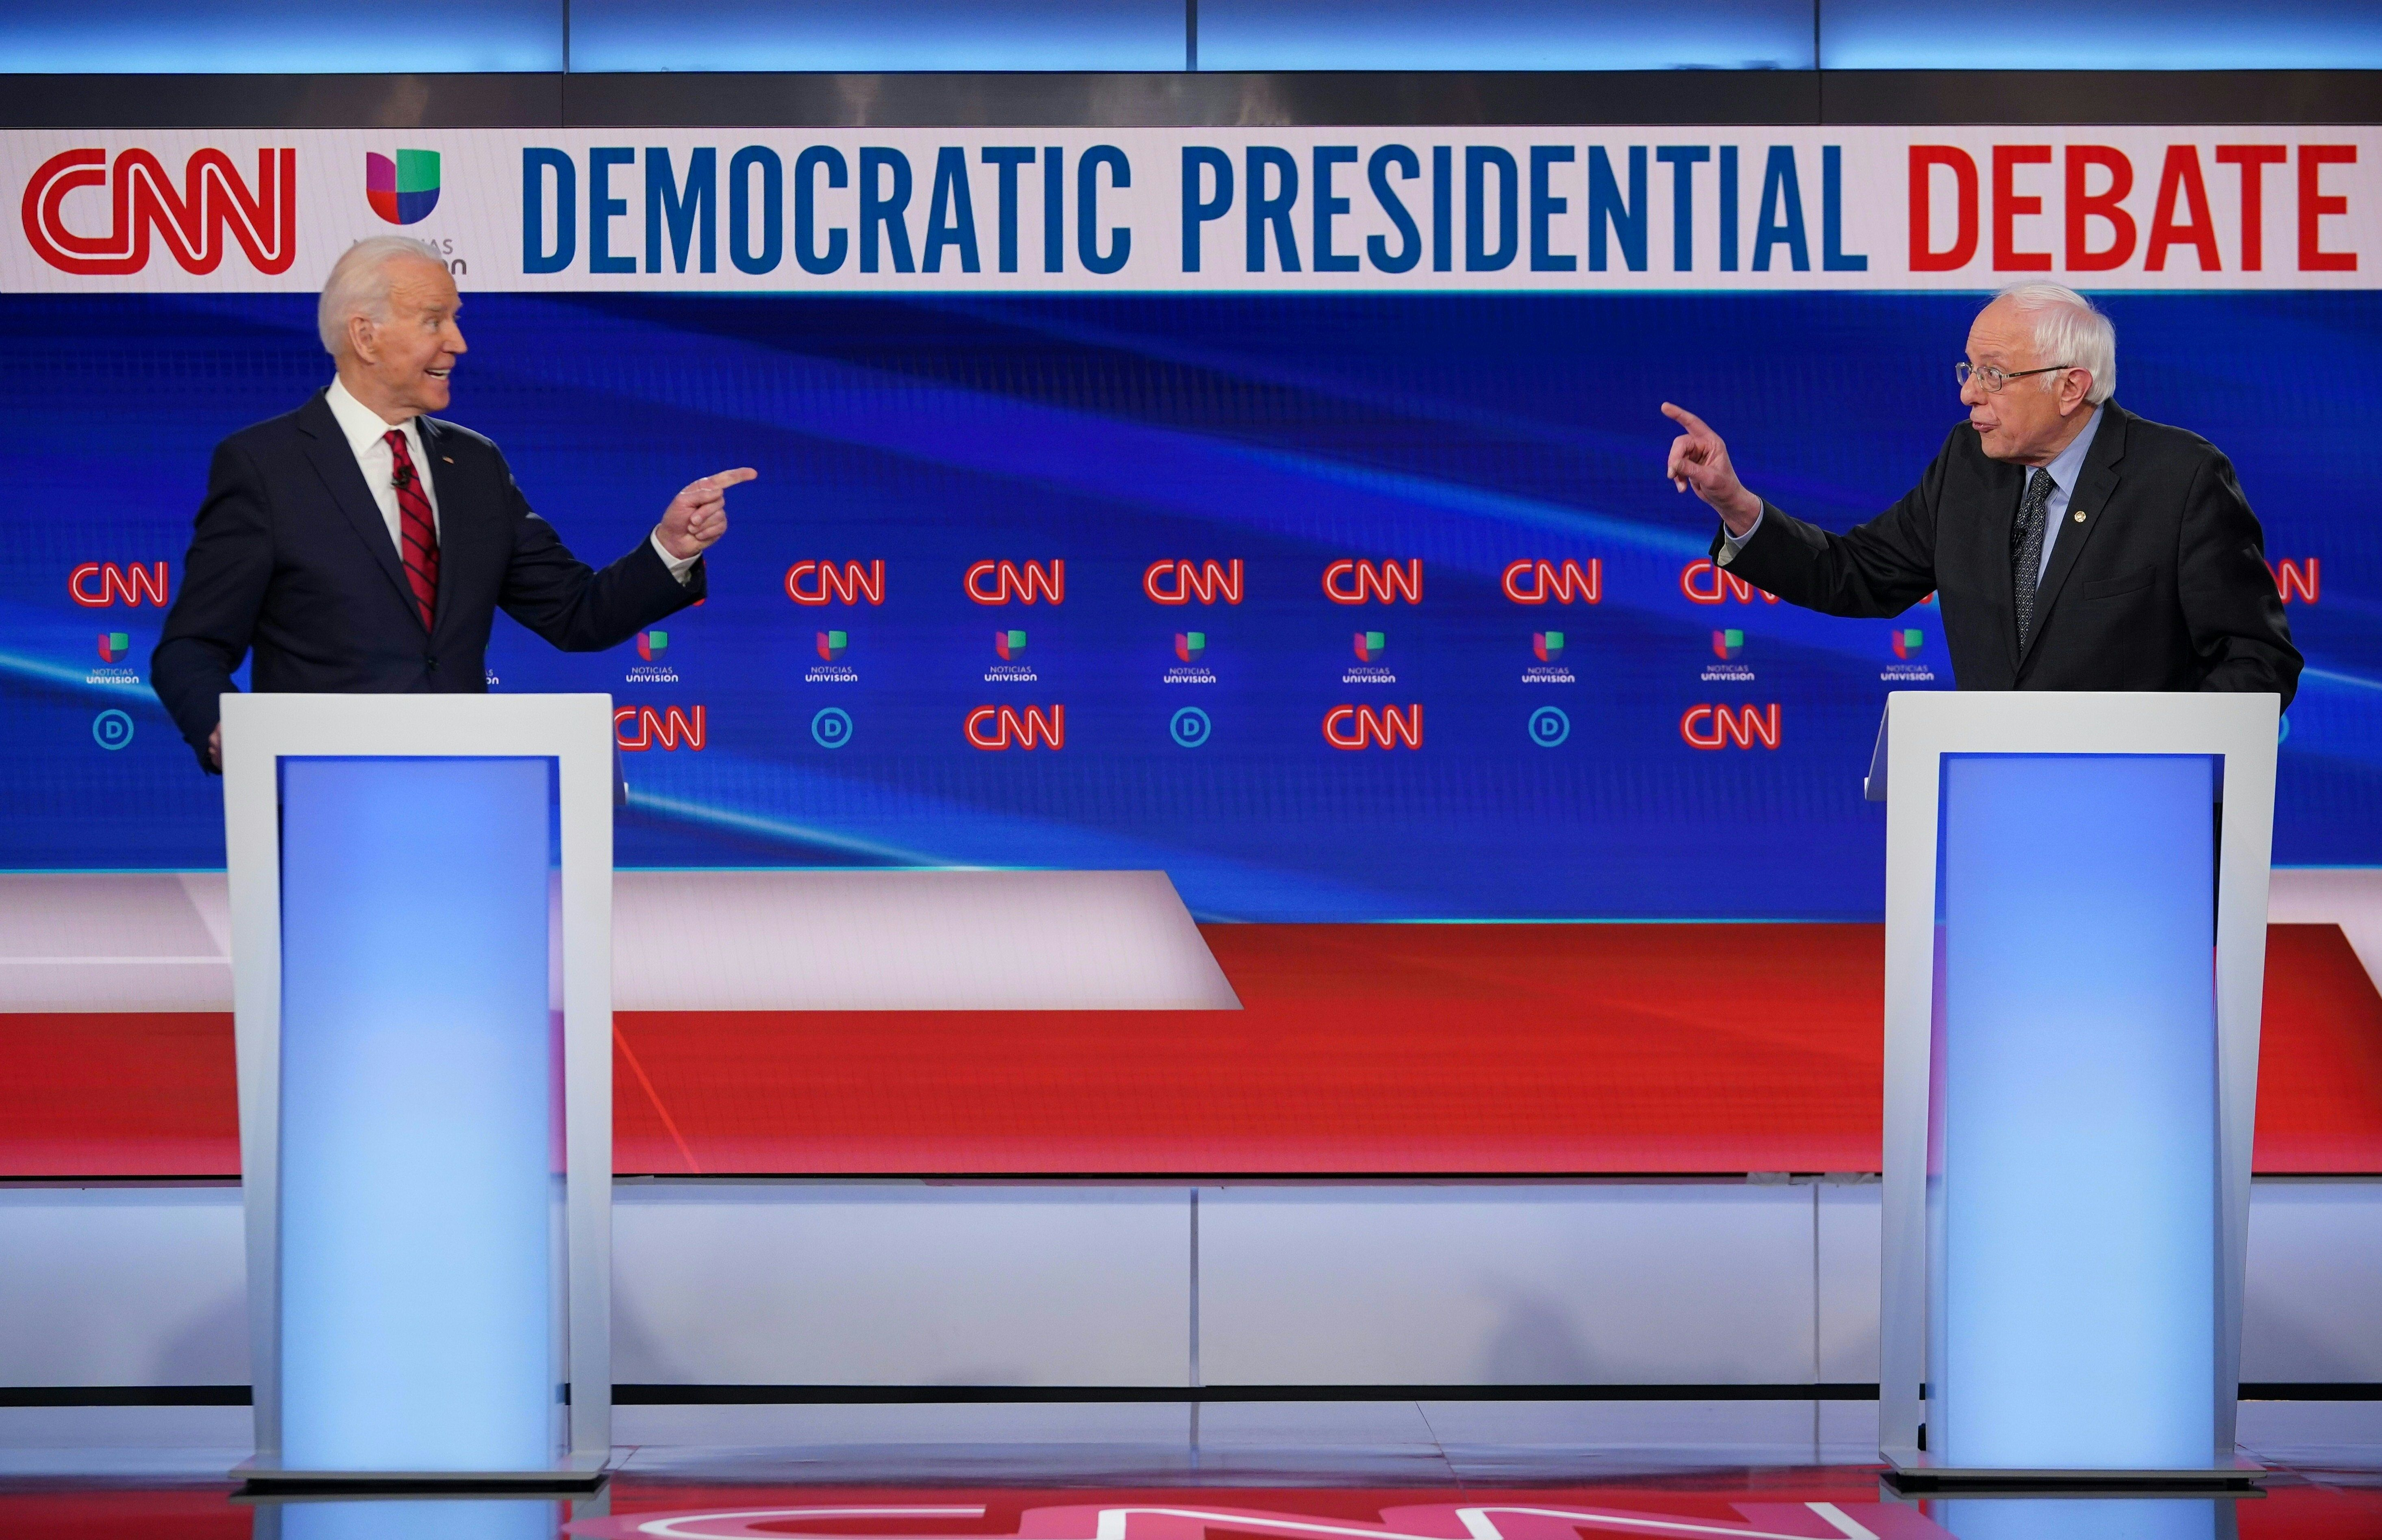 Democratic presidential hopefuls former US vice president Joe Biden (L) and Senator Bernie Sanders point fingers at each other as they take part in the 11th Democratic Party 2020 presidential debate in a CNN Washington Bureau studio in Washington, DC on March 15, 2020. (MANDEL NGAN/AFP via Getty Images)